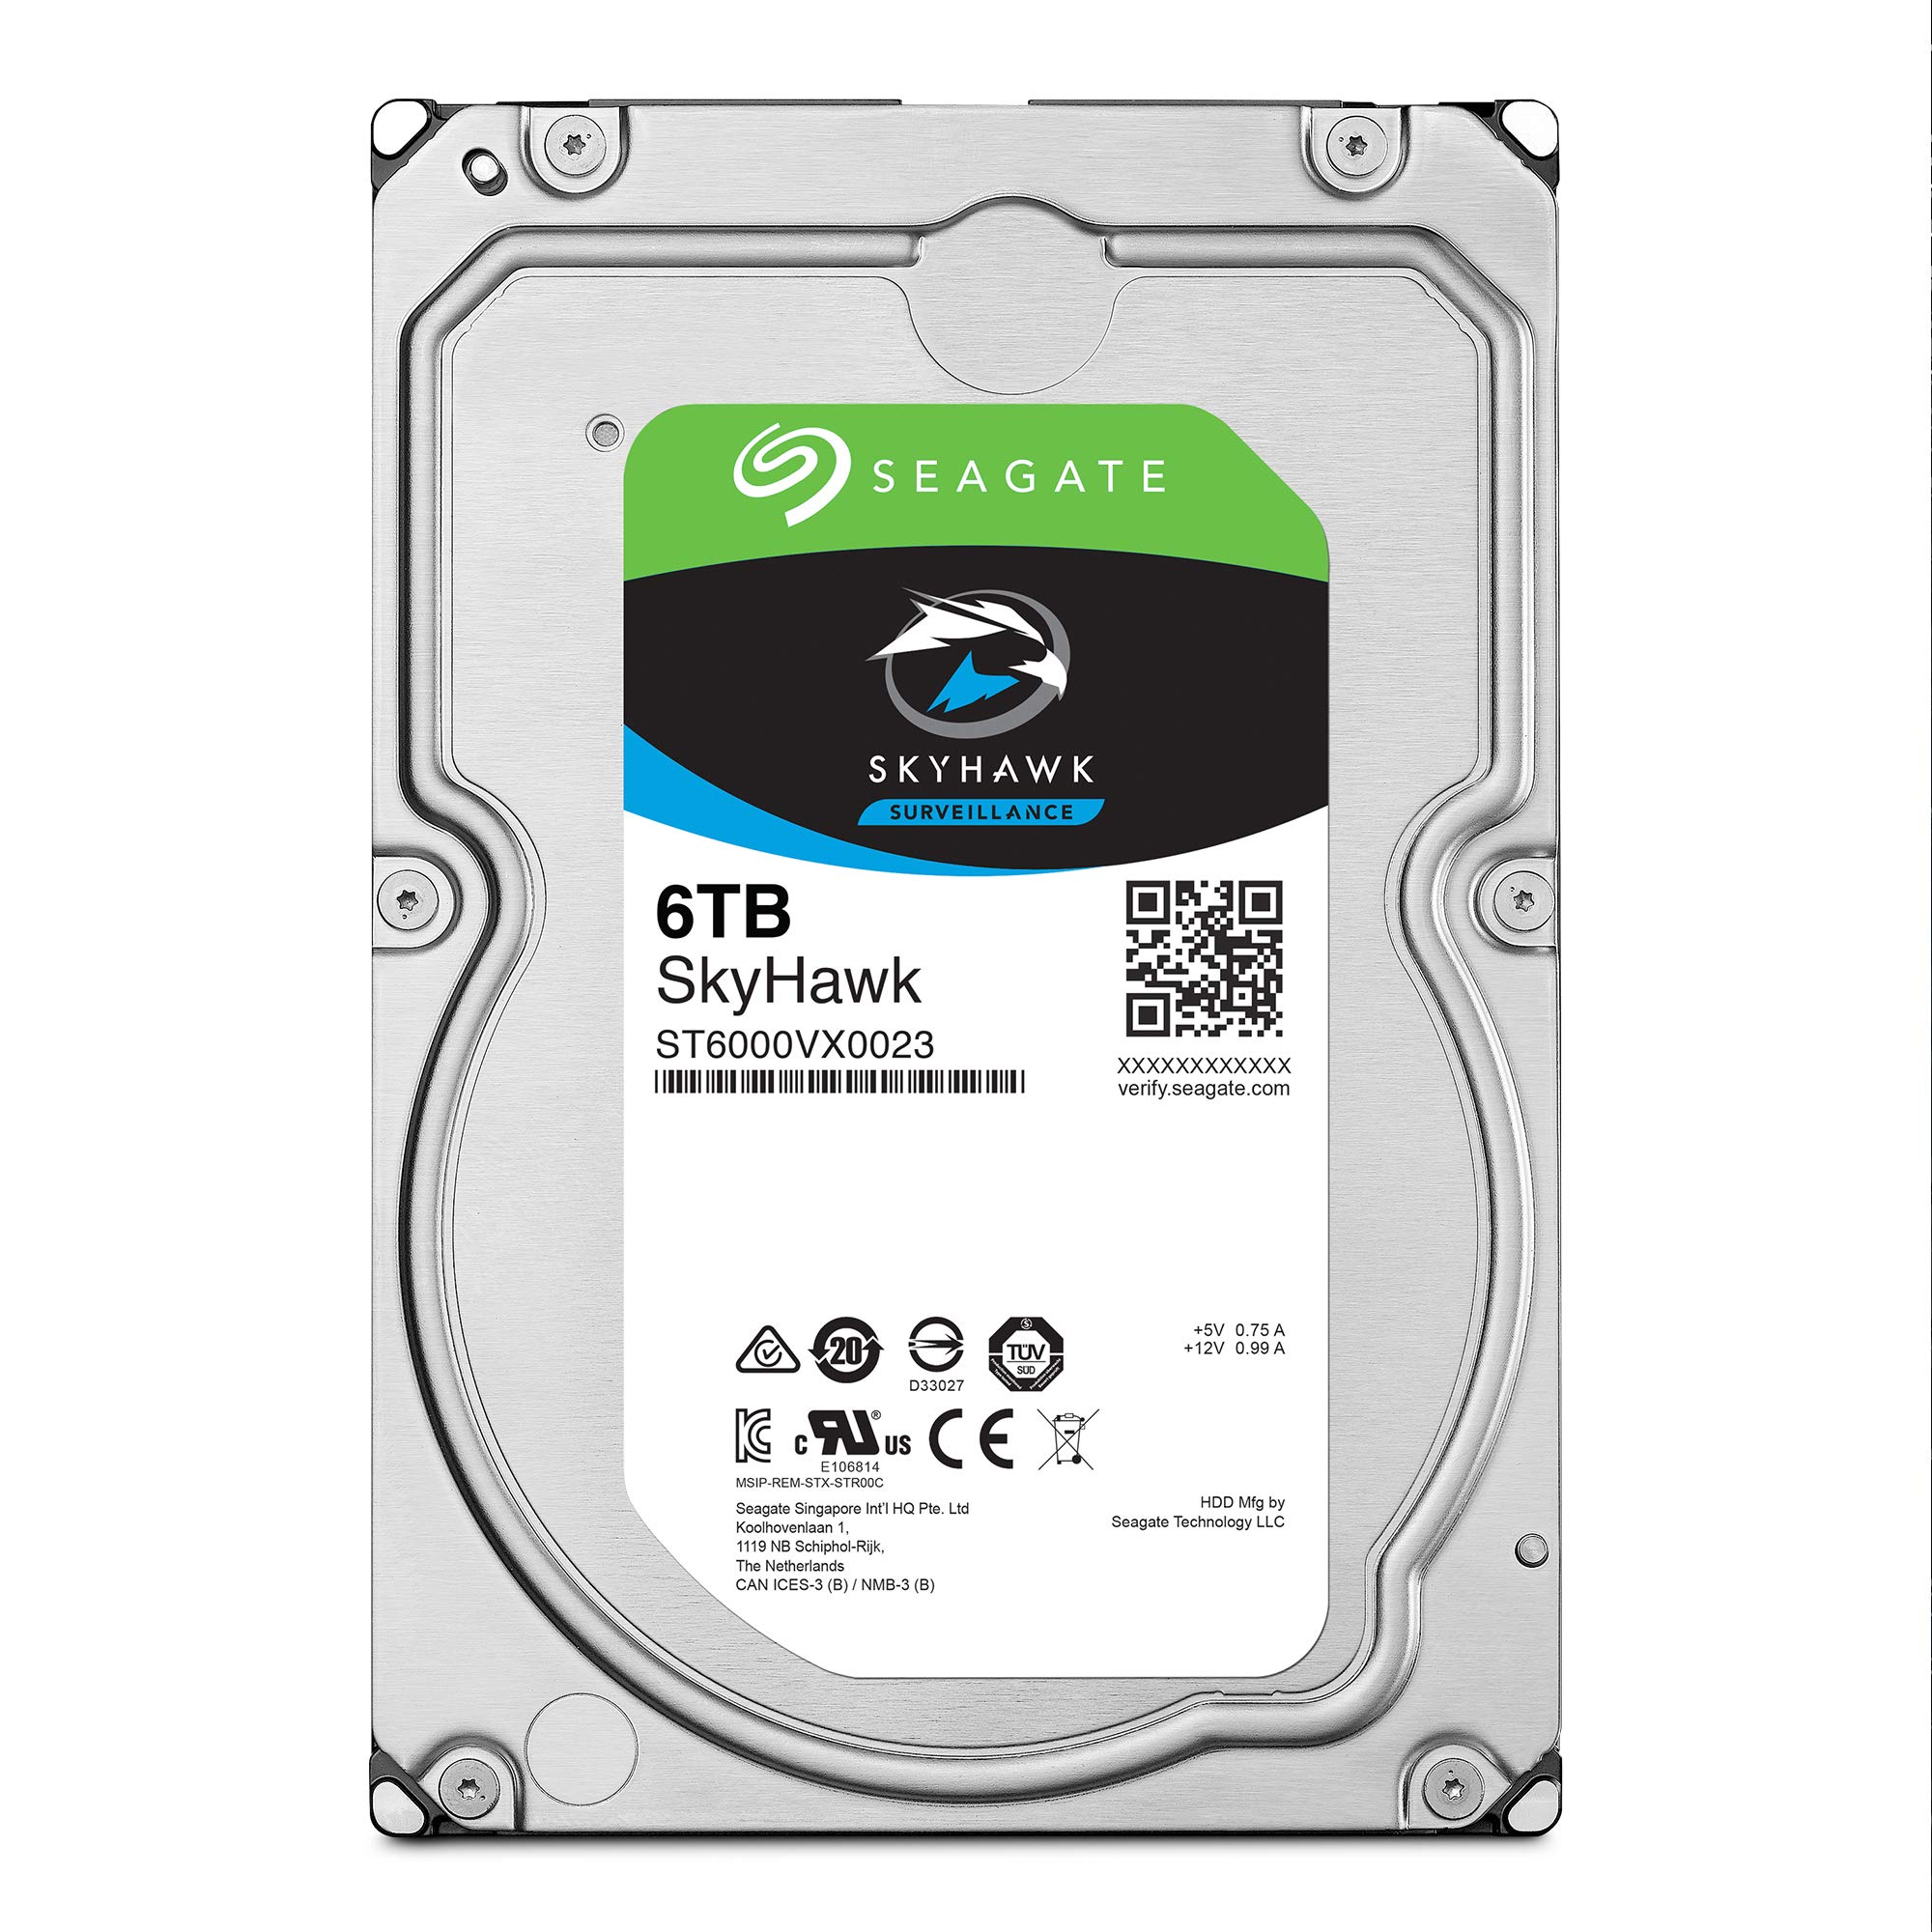 Seagate Skyhawk 6TB Surveillance Internal Hard Drive HDD - 3.5 Inch SATA 6GB/s 256MB Cache for DVR NVR Security Camera System with Drive Health Management - Frustration Free Packaging (ST6000VX001) by Seagate (Image #2)